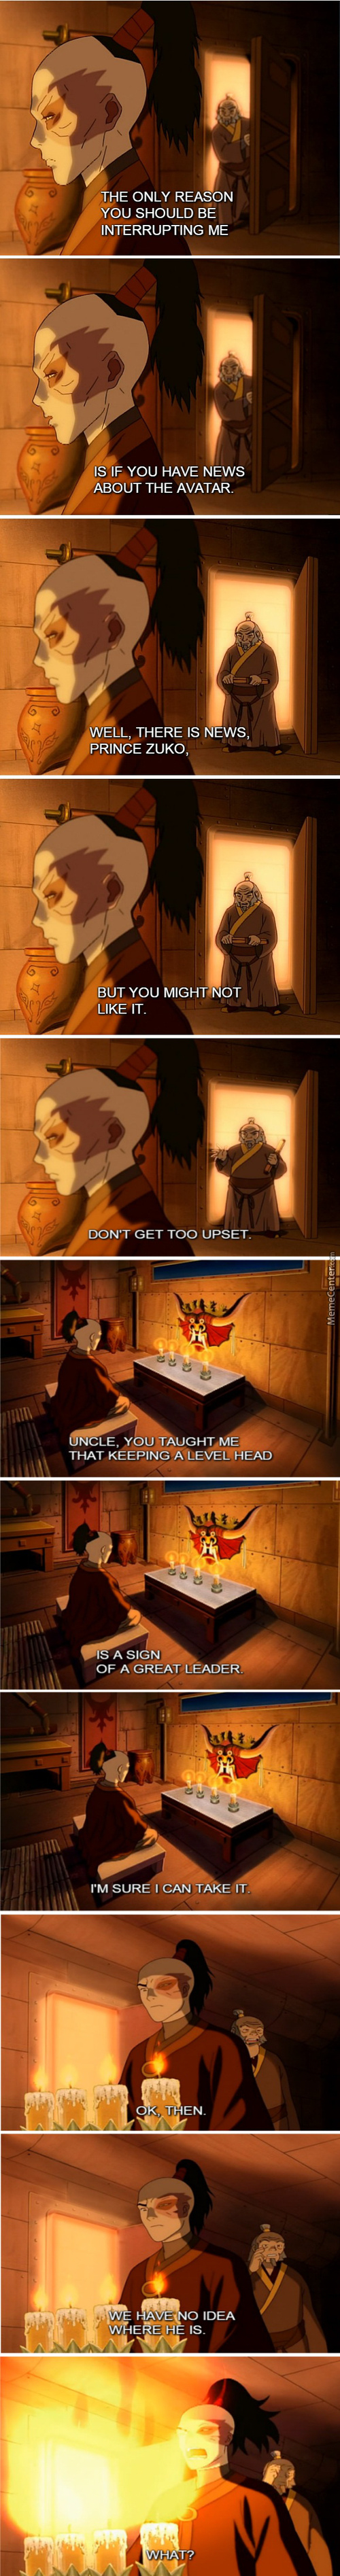 Long Ago, Zuko Was Calm And Peaceful Then Everything Changed When Uncle Iroh Attacked